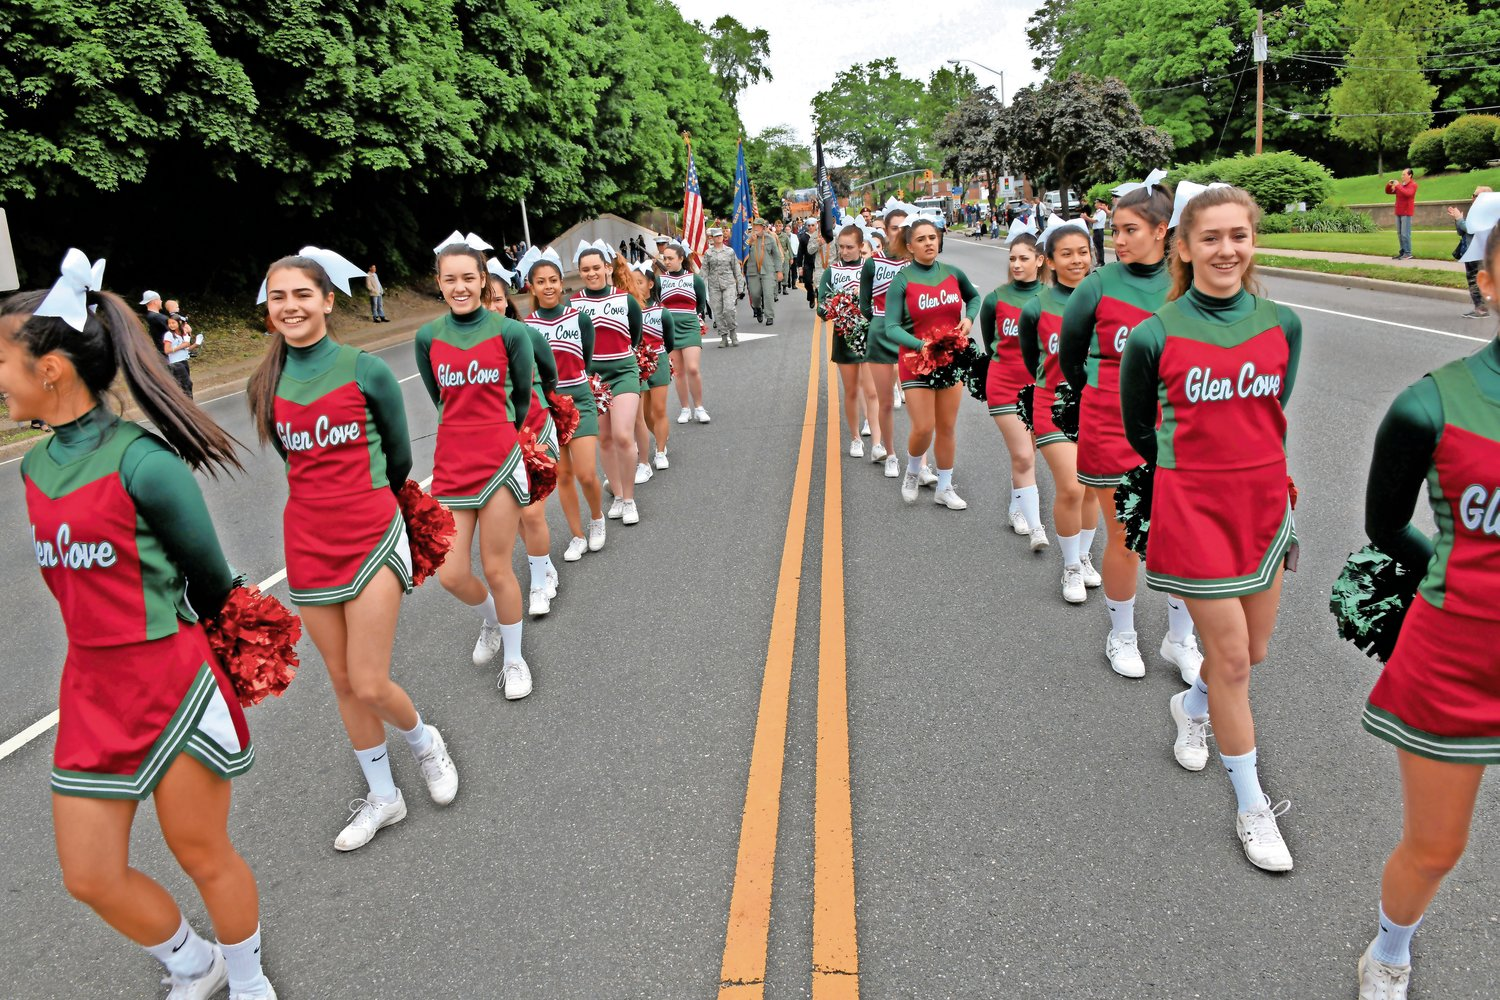 Cheerleaders from Glen Cove schools kept the parade route lively for Memorial Day.